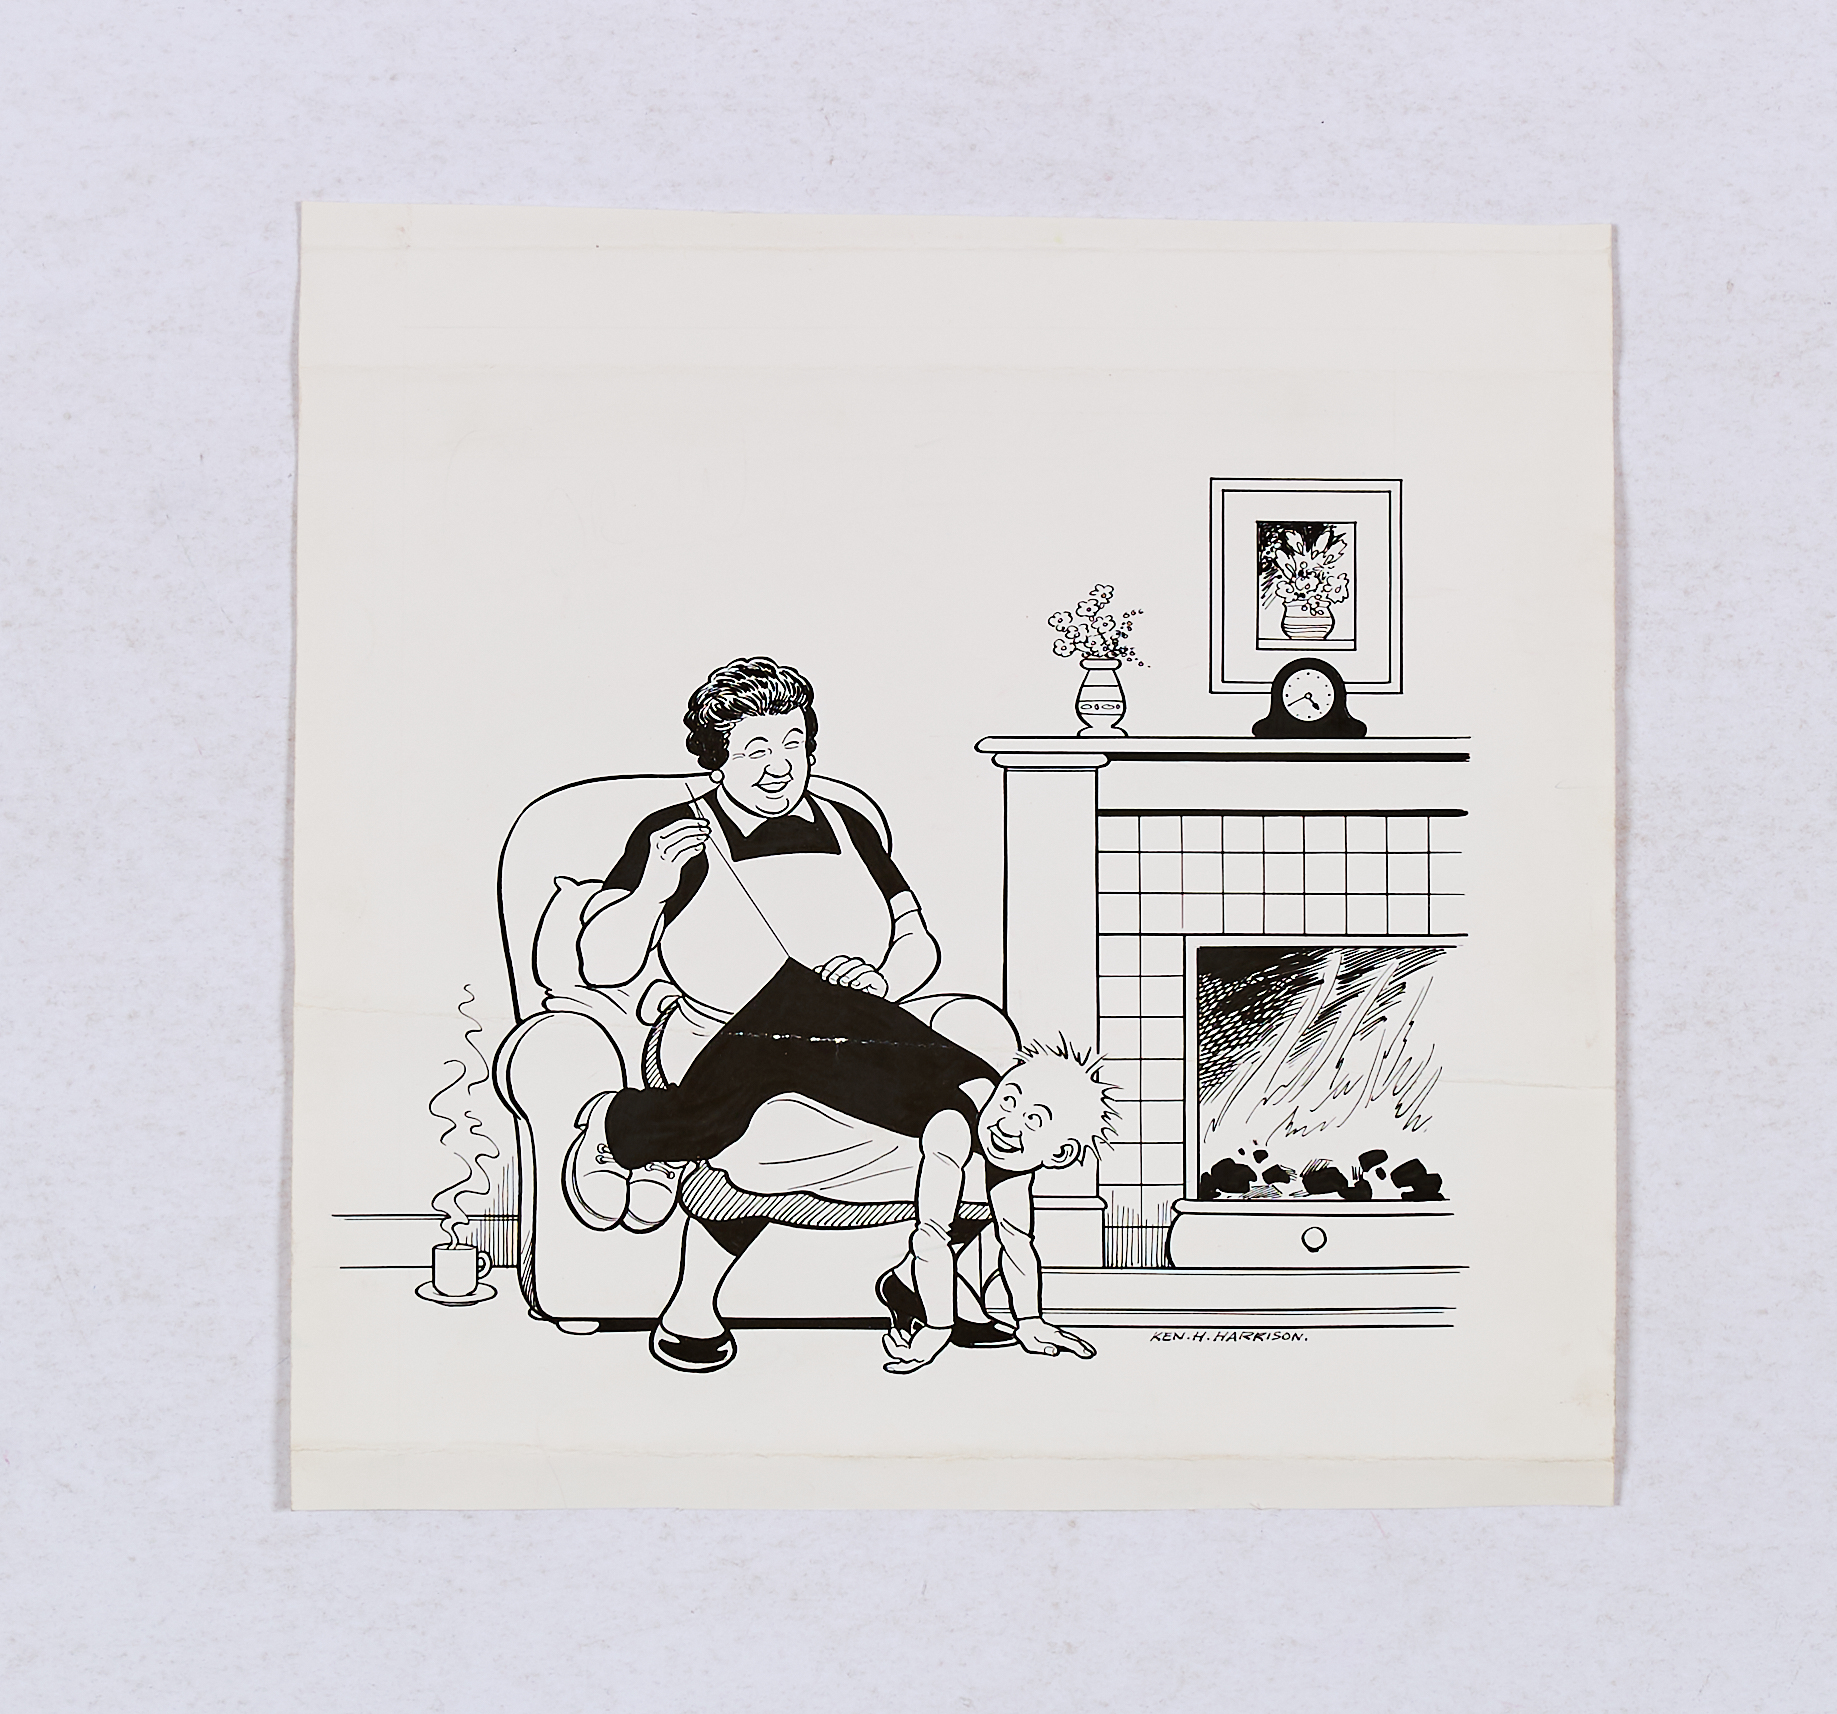 Lot 126 - Oor Wullie original artwork drawn and signed by Ken Harrison (1990s). Maw stitches Oor Wullie's